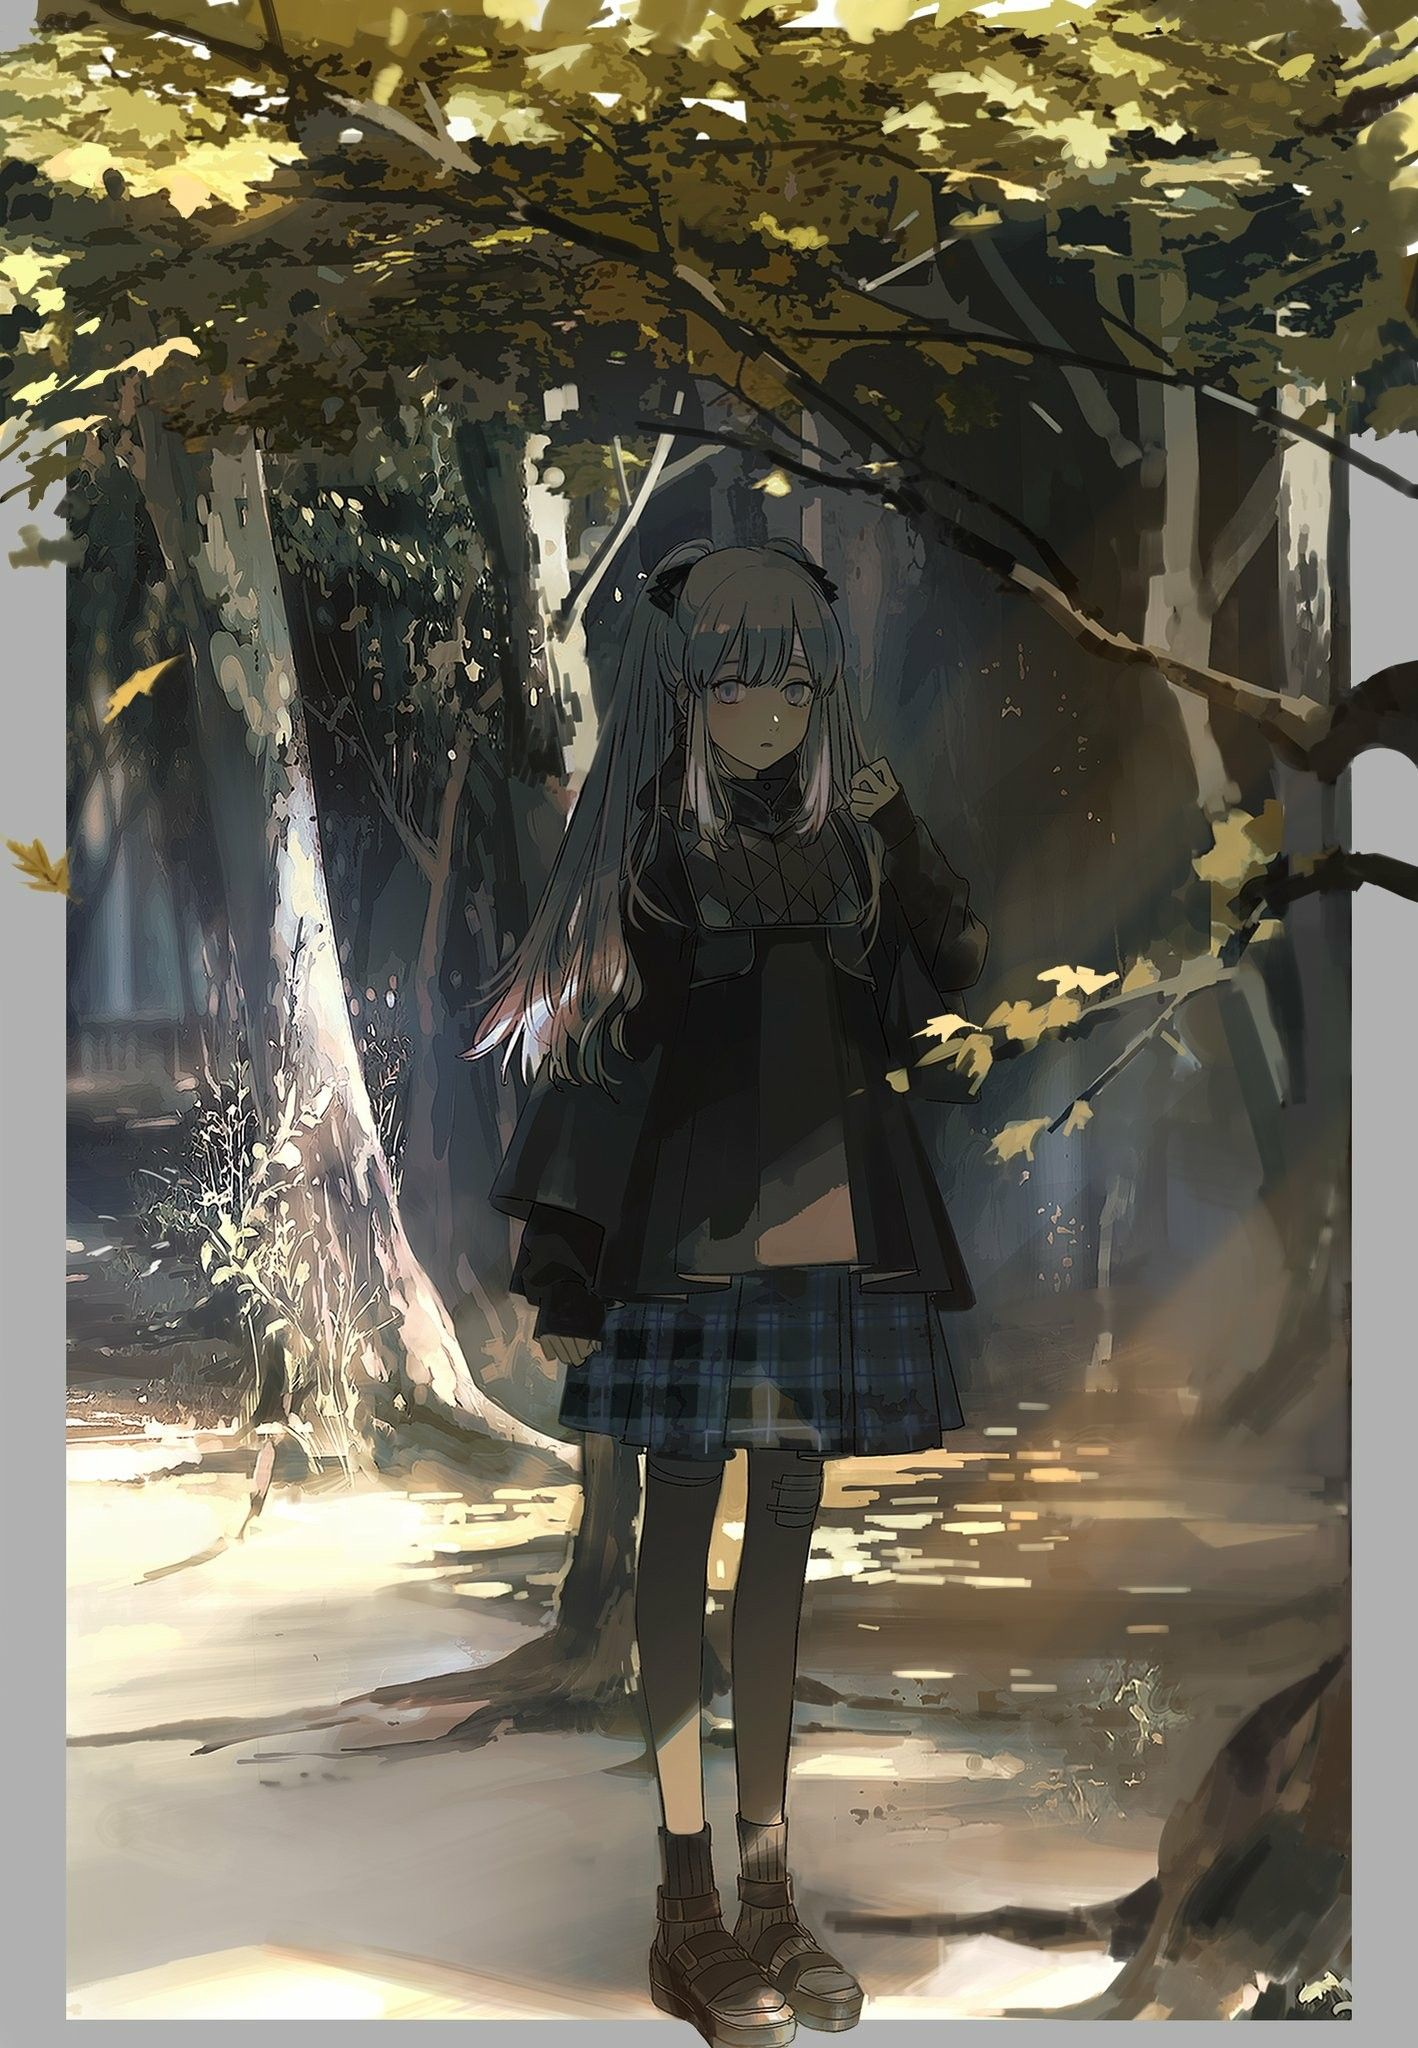 Pin by Kat on backgrounds Anime art girl, Cute anime boy